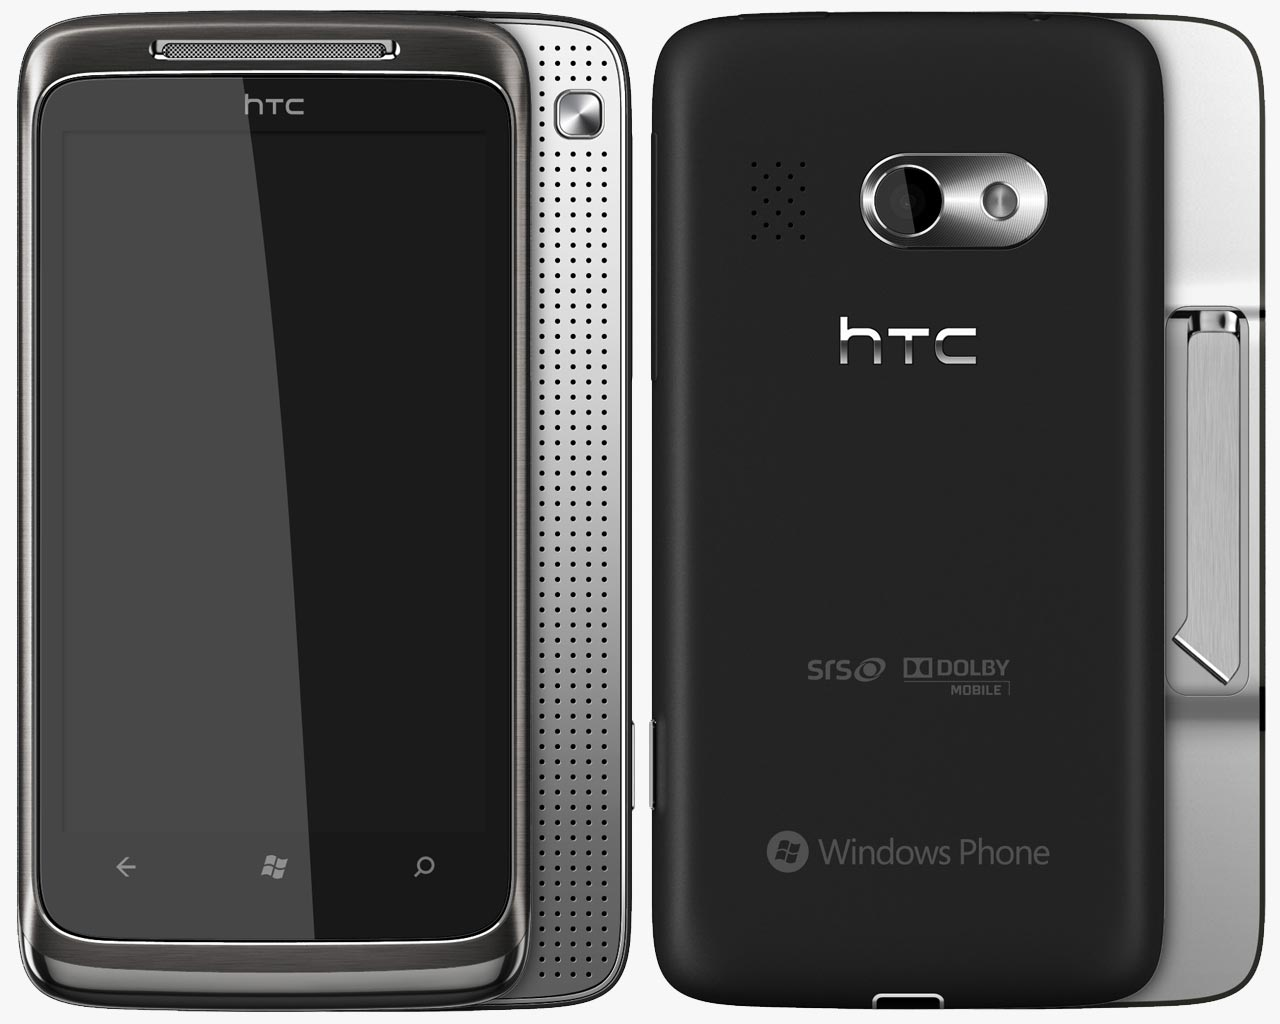 Htc 7 Surround Specs Review Release Date Phonesdata Lenovo Vibe X S960 With Corning Gorilla Glass Pictures